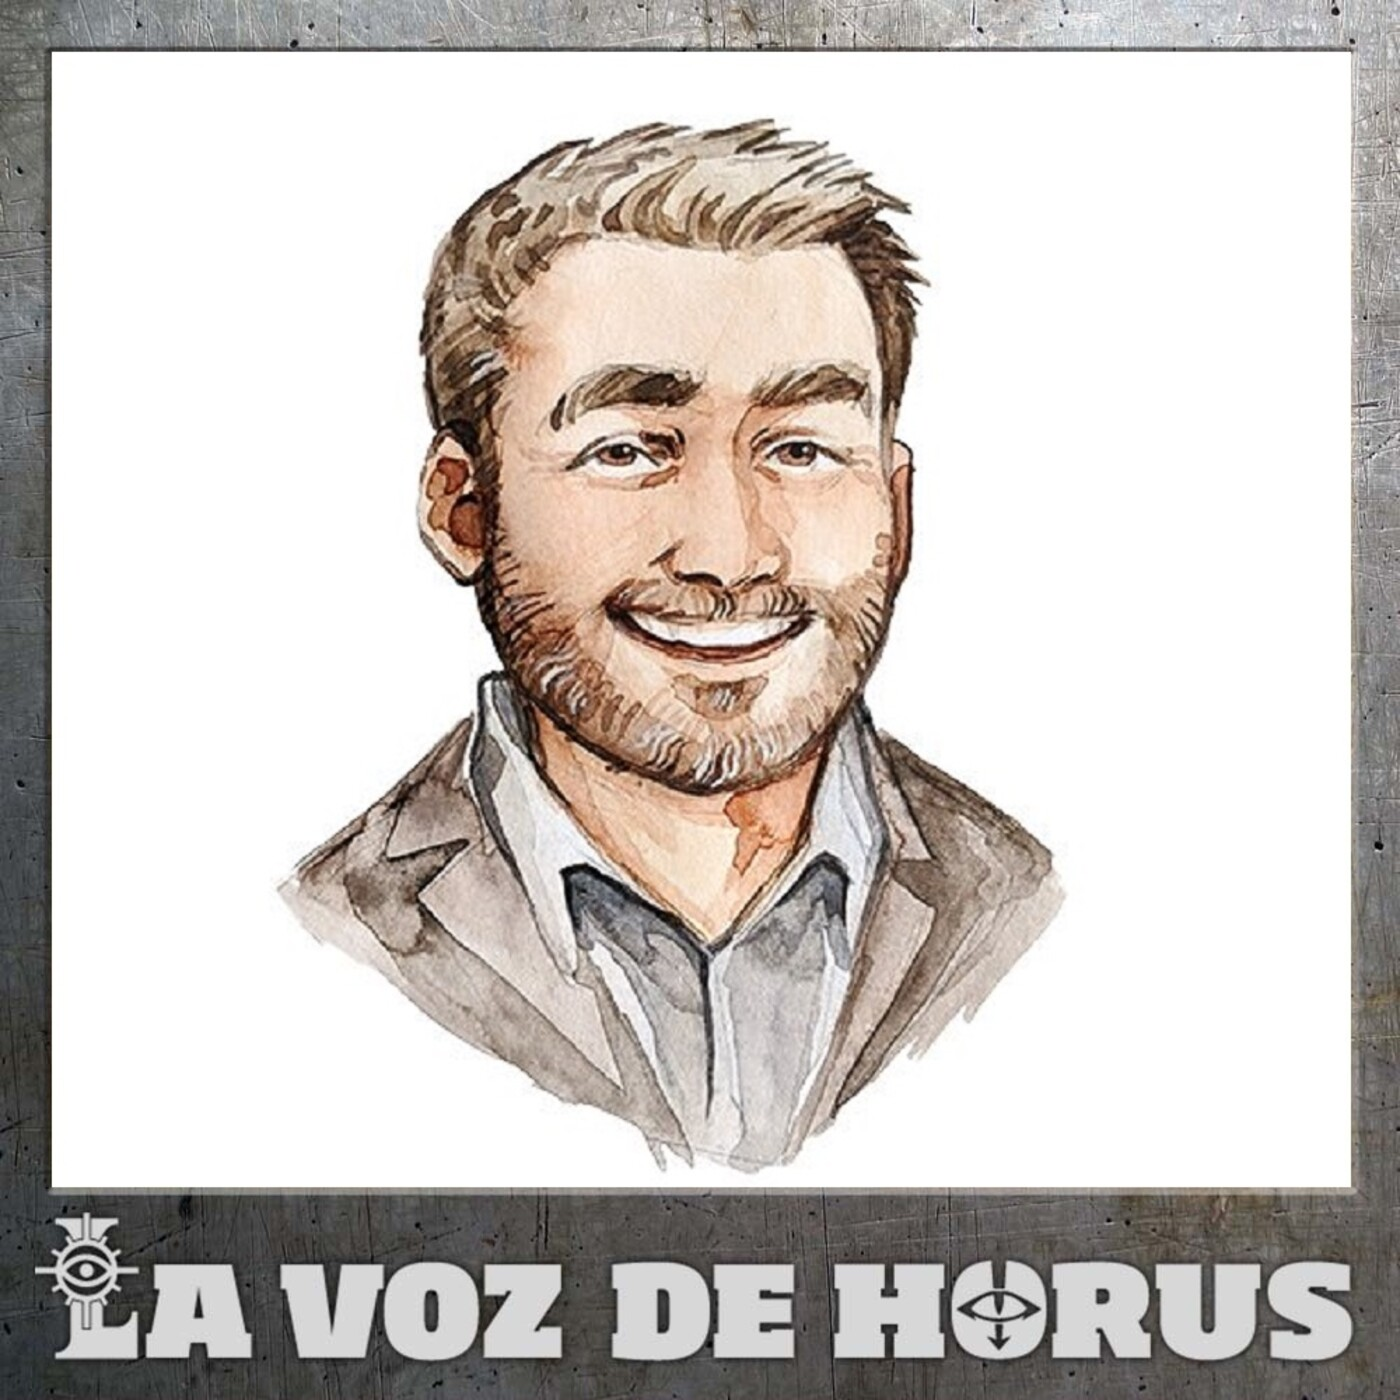 LVDH 188 - Mike Brandt de Games Workshop, responsable global de eventos y torneos